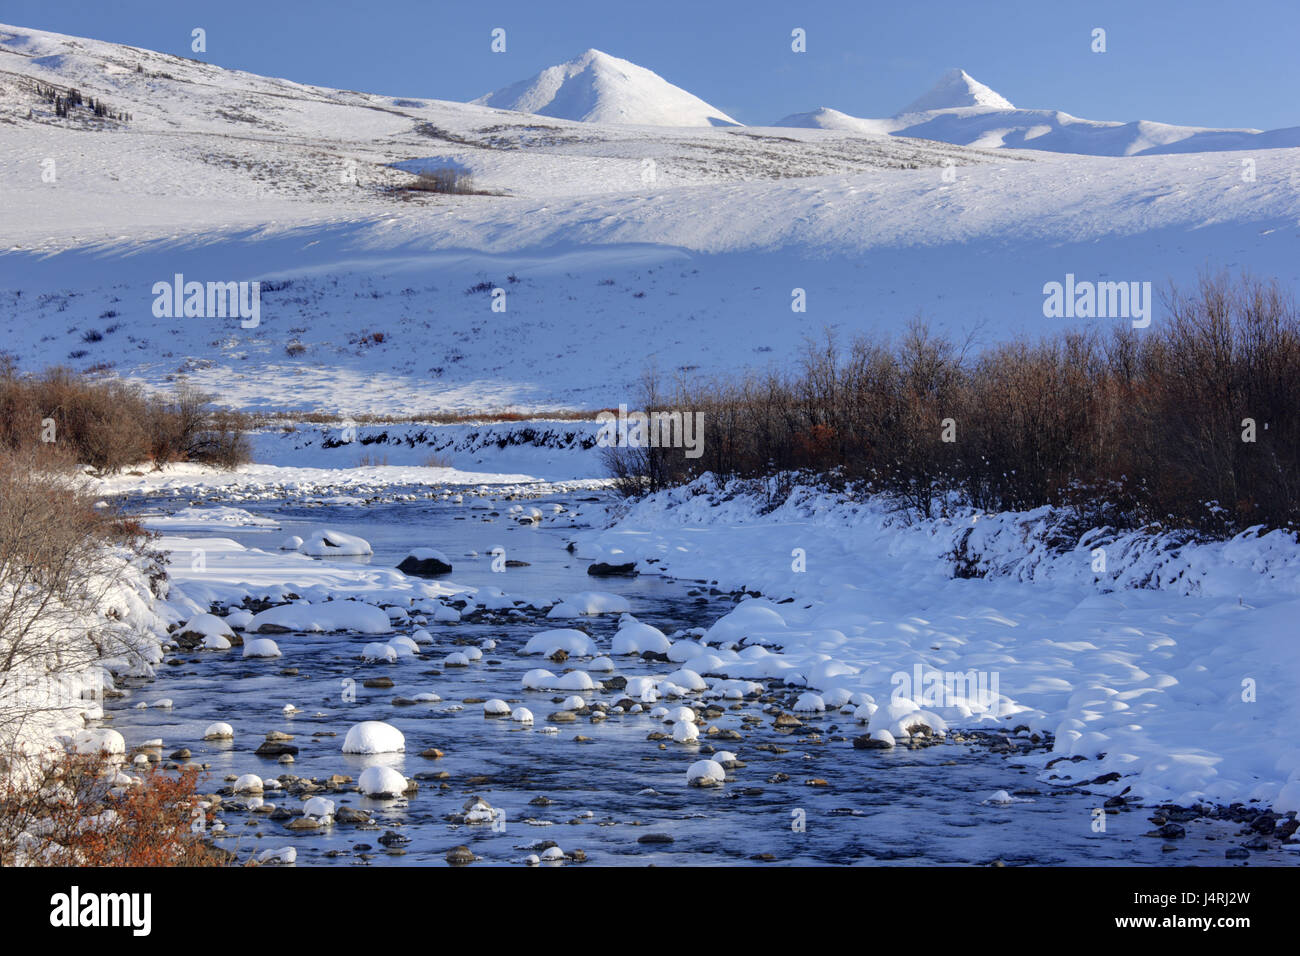 North America, Canada, Yukon territory, Tombstone Territorial park, Dempster highway, Ogilvie Mountains, winter, - Stock Image